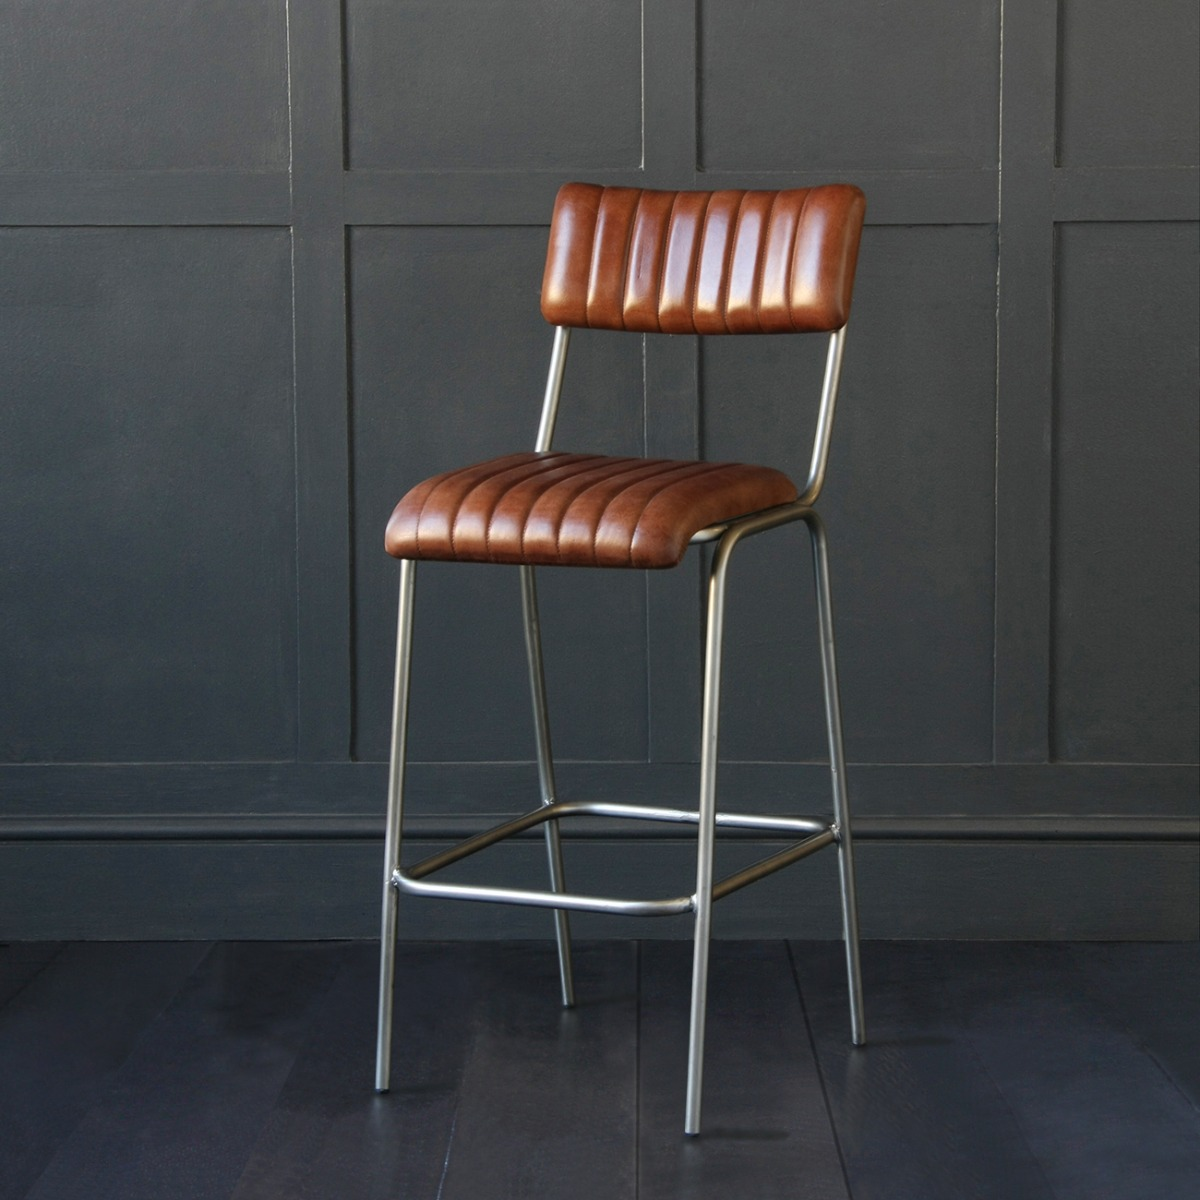 Our Diner Bar Stool boasts an effortless sense of mid-century style